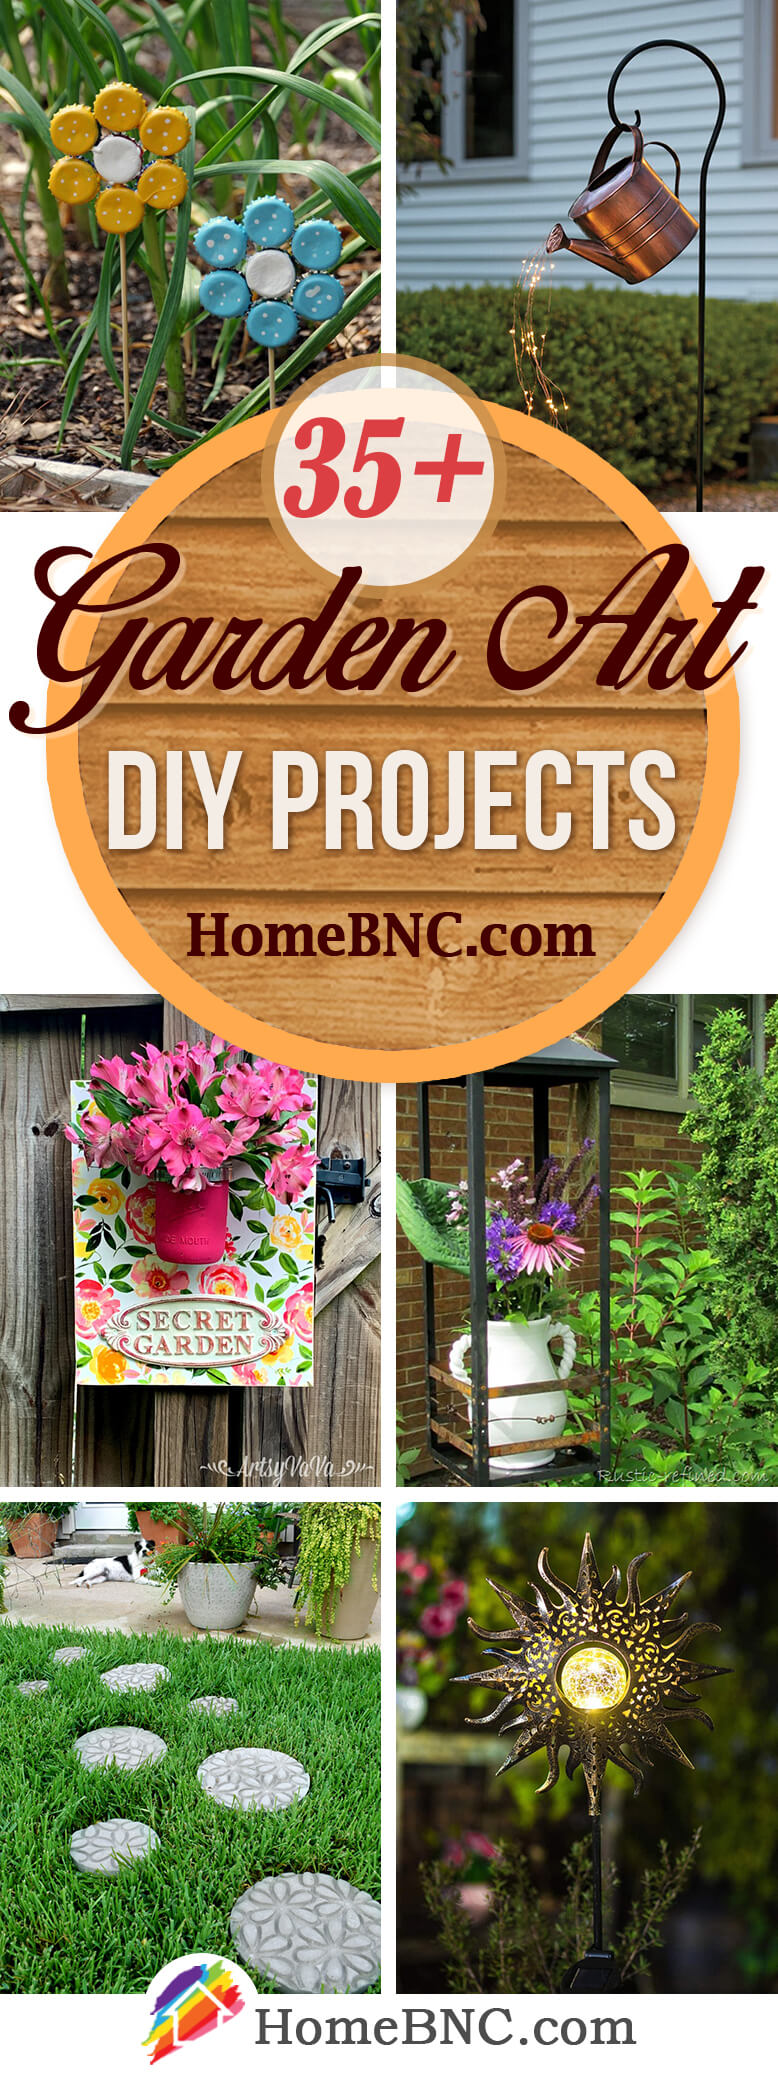 Garden Art DIY Projects